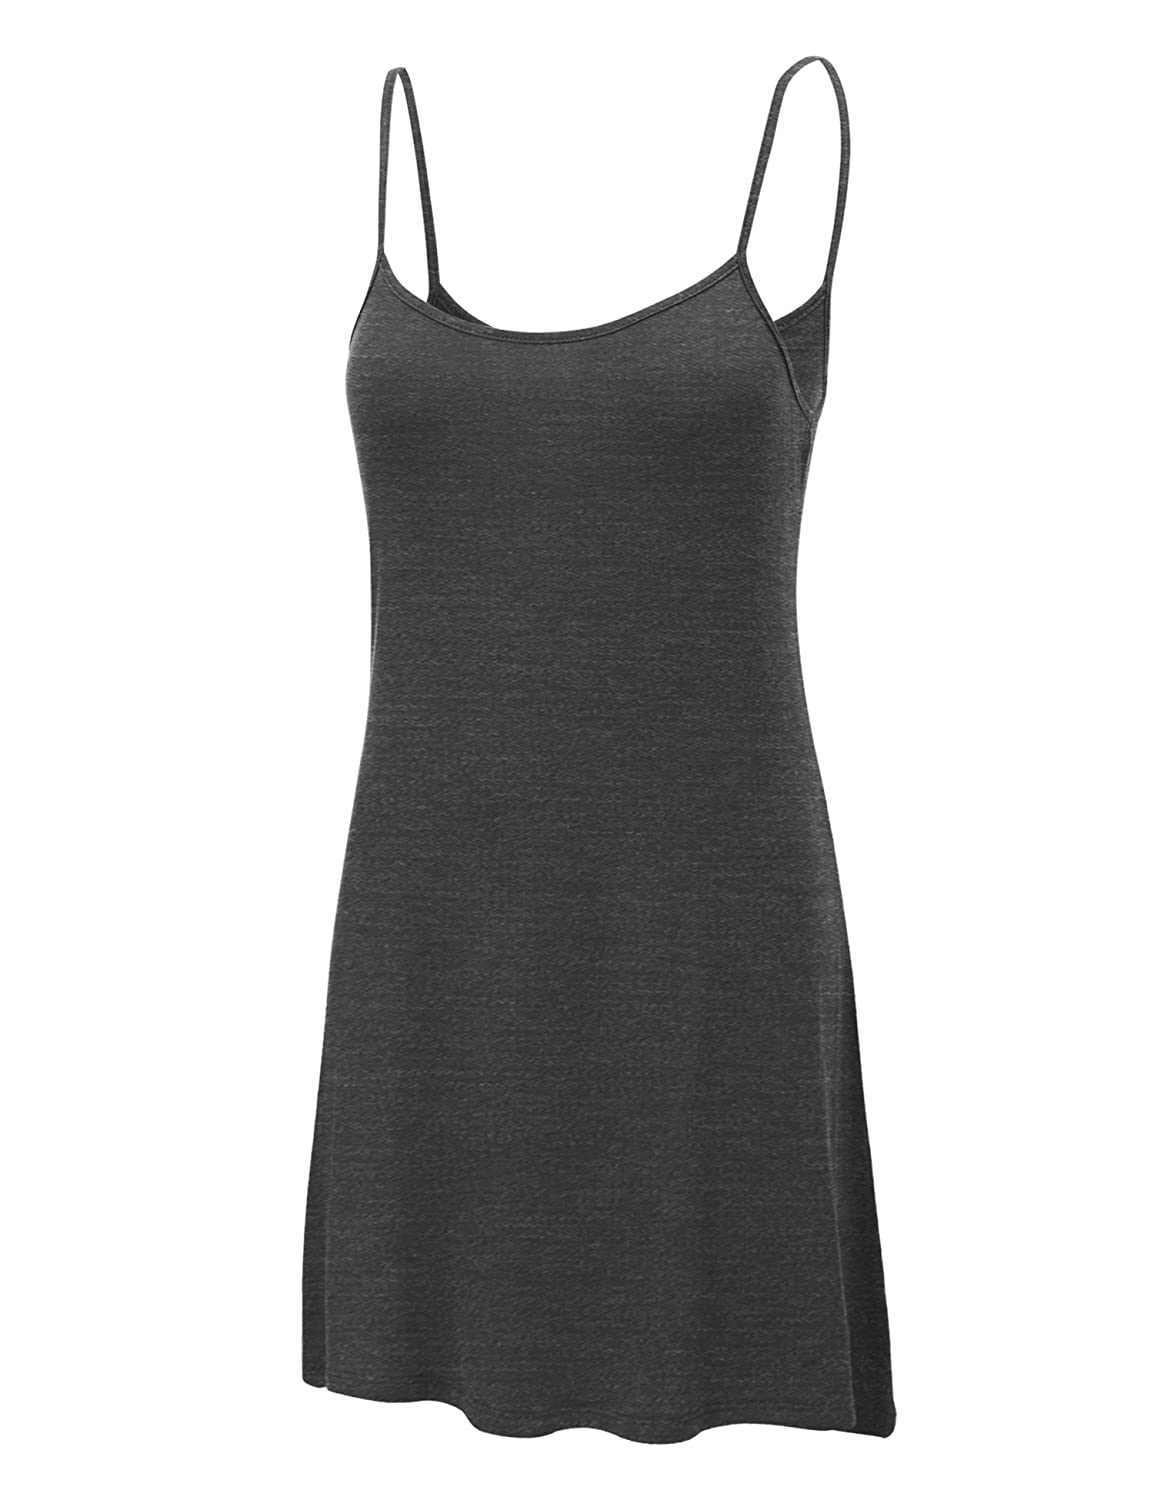 MBJ WDR1111 Womens Solid Basic Spaghetti Strap Tunic Top L HEATHER_CHARCOAL